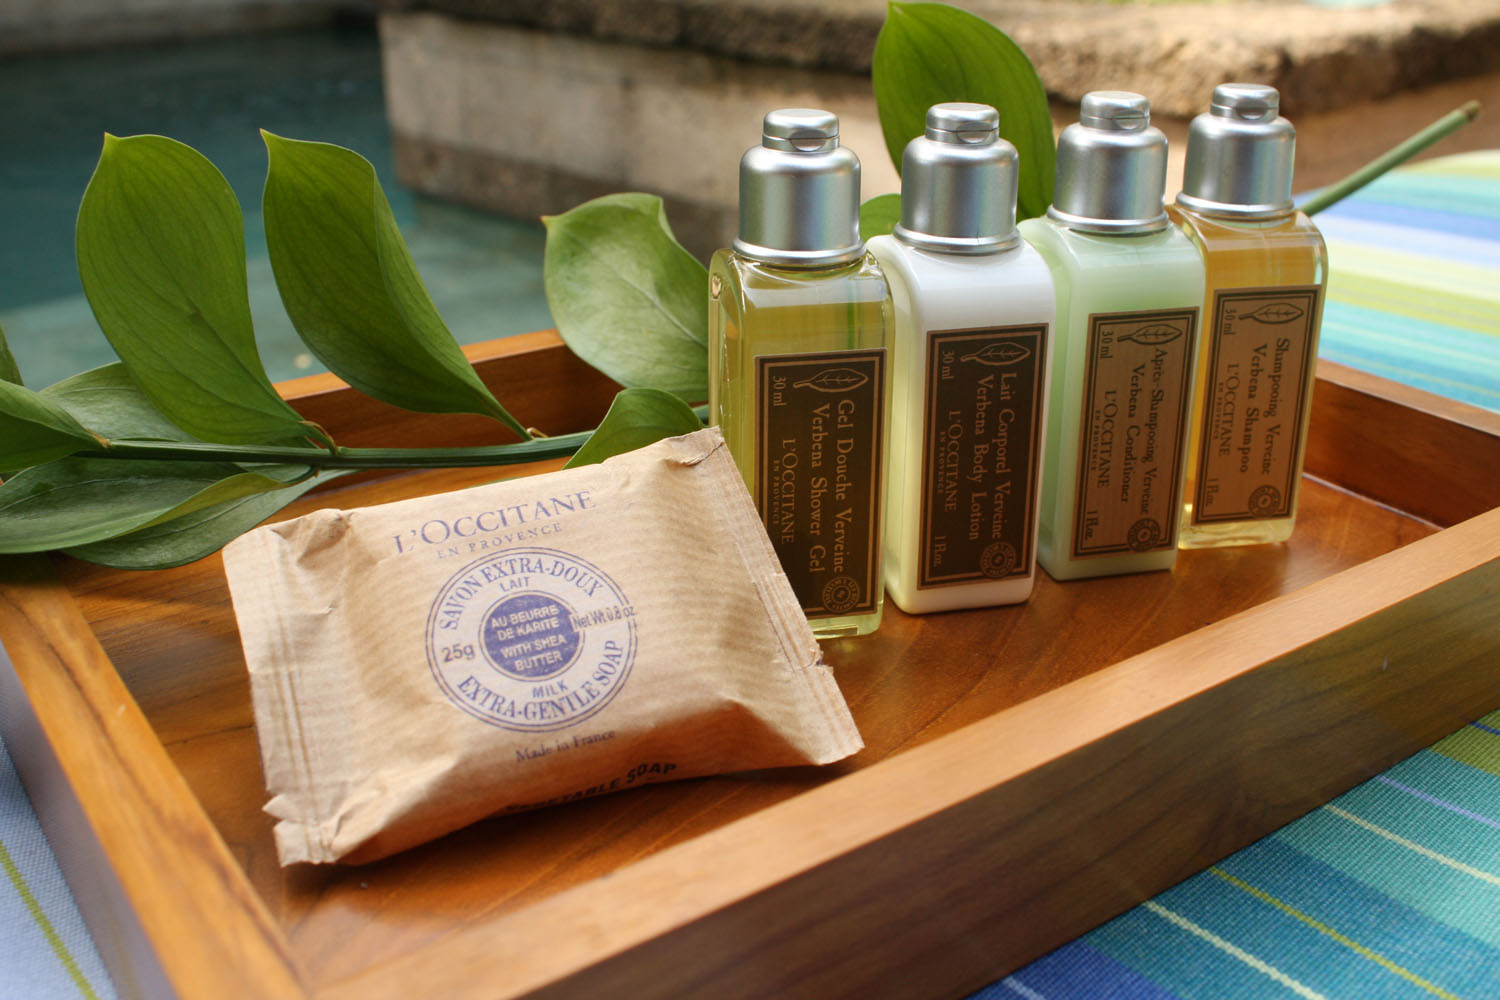 L'Occitane Yacht Toiletries